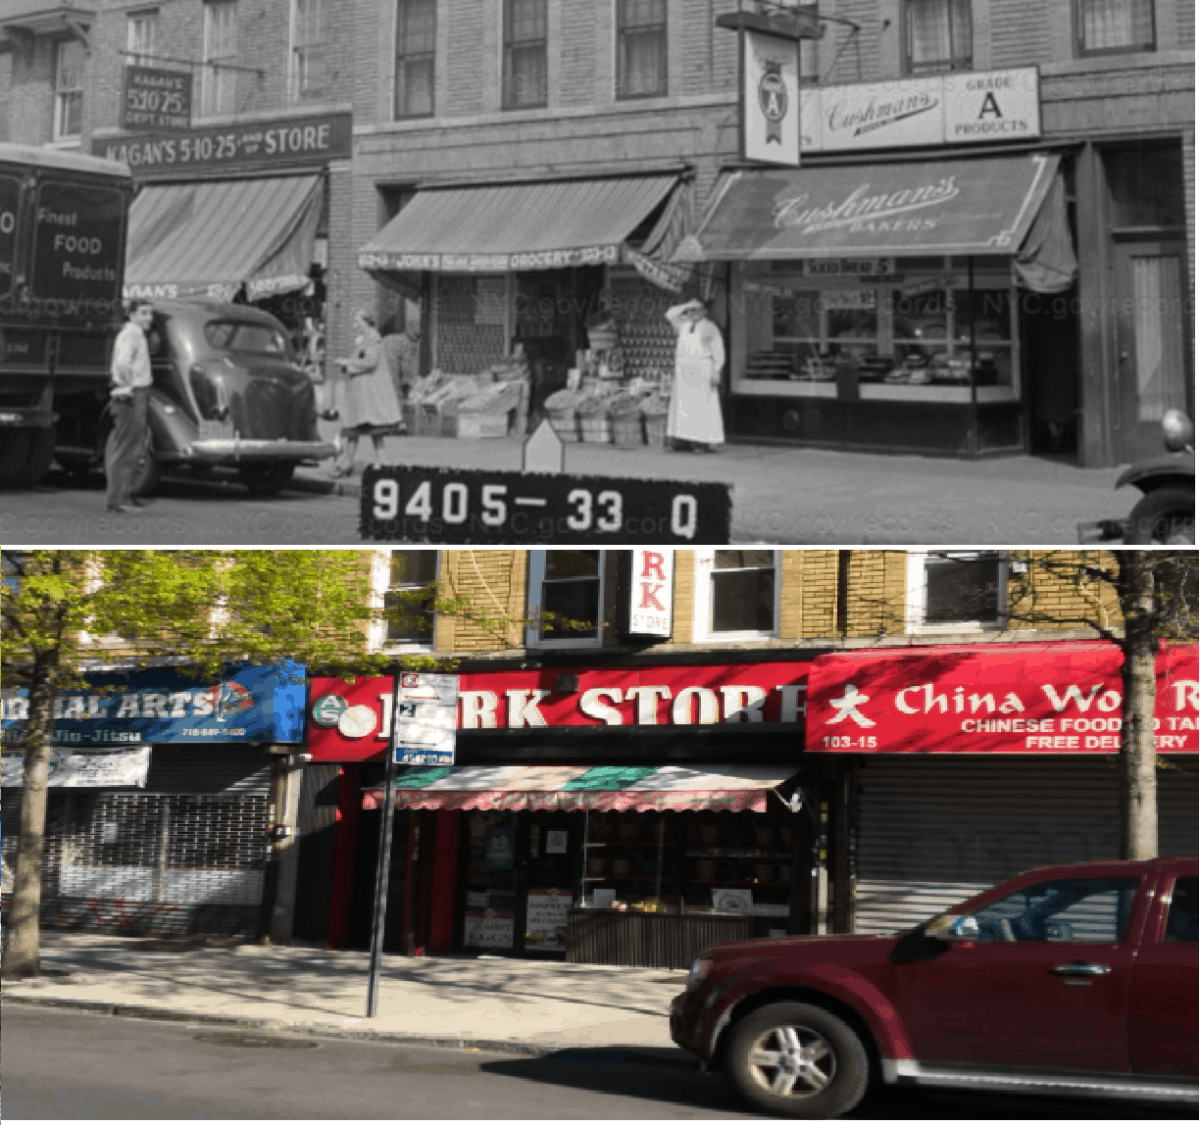 80 Years Later, NYC Italian Grocery still Standing and Serving Classic Fare